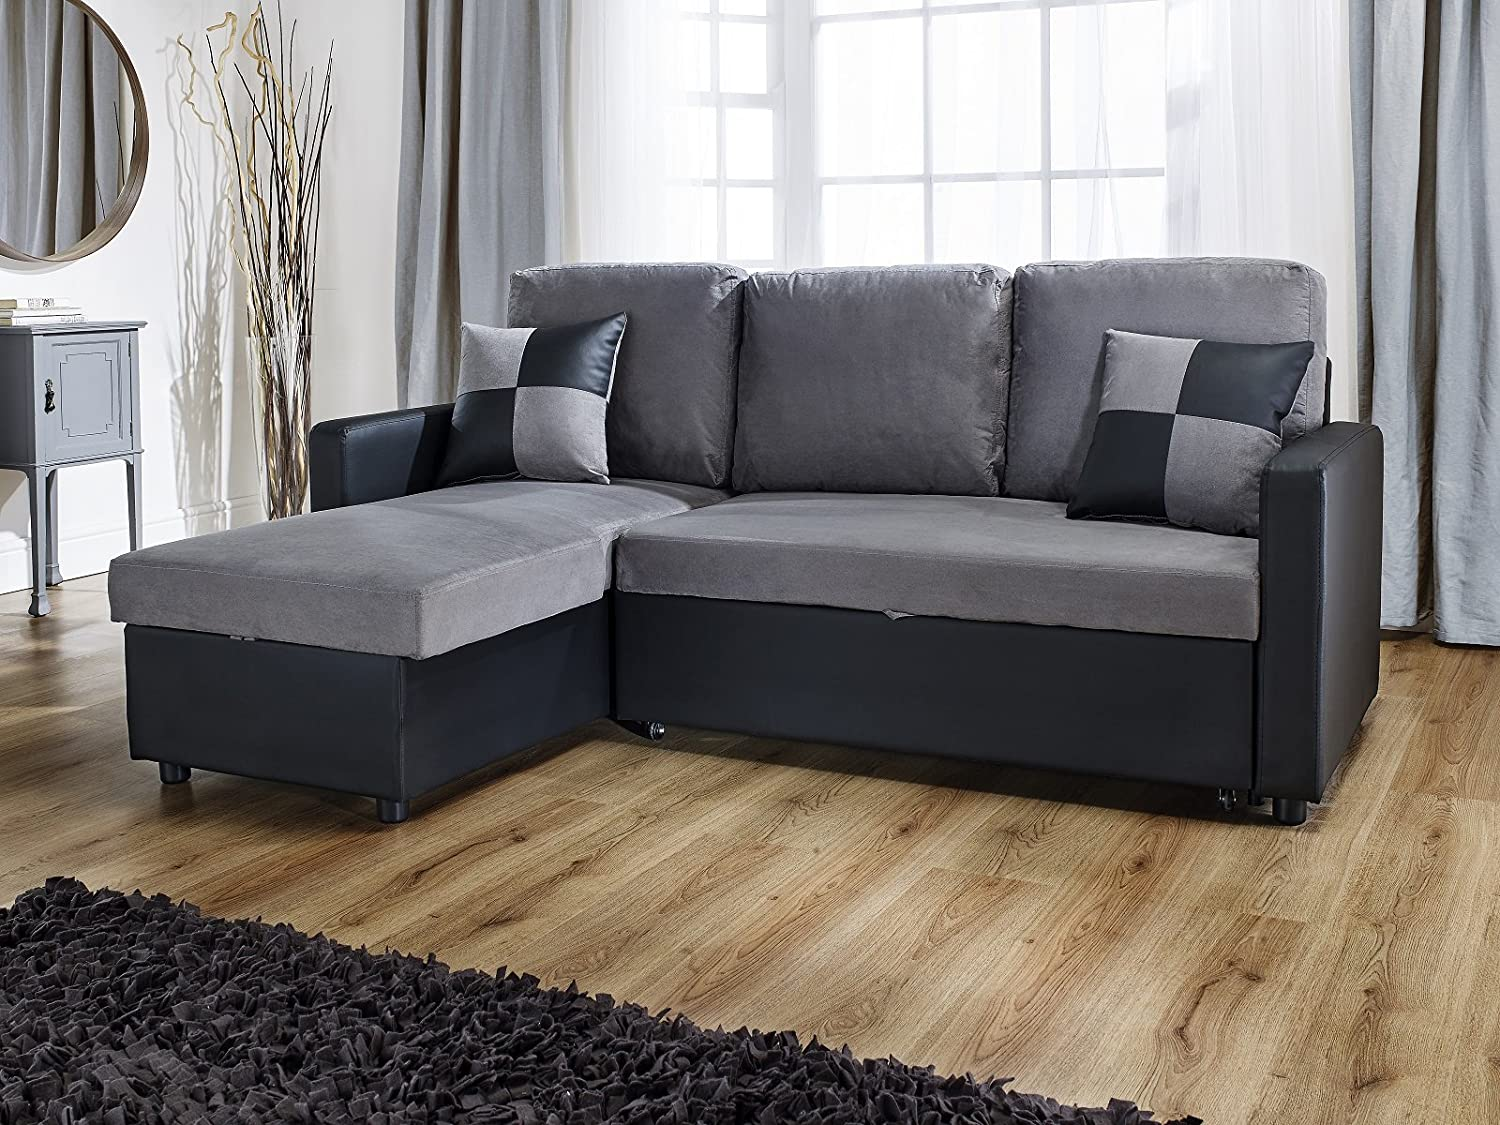 Rio Brown Leather Sofa Bed 3 Seater Mjob Blog